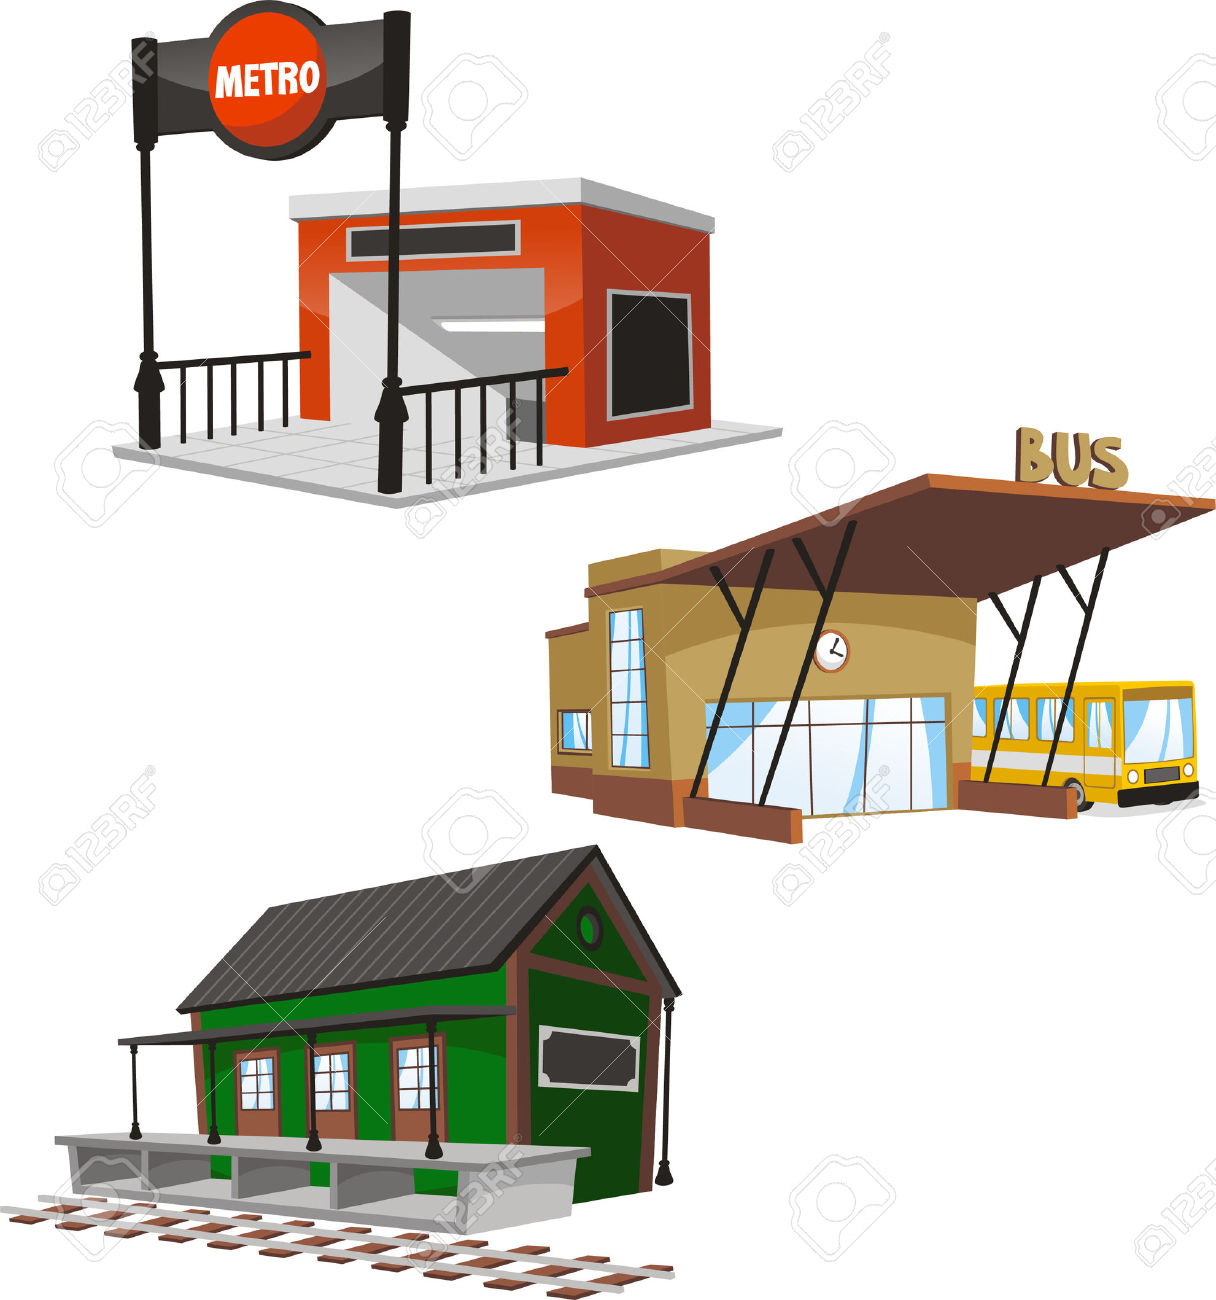 4,263 Train Platform Stock Vector Illustration And Royalty Free.